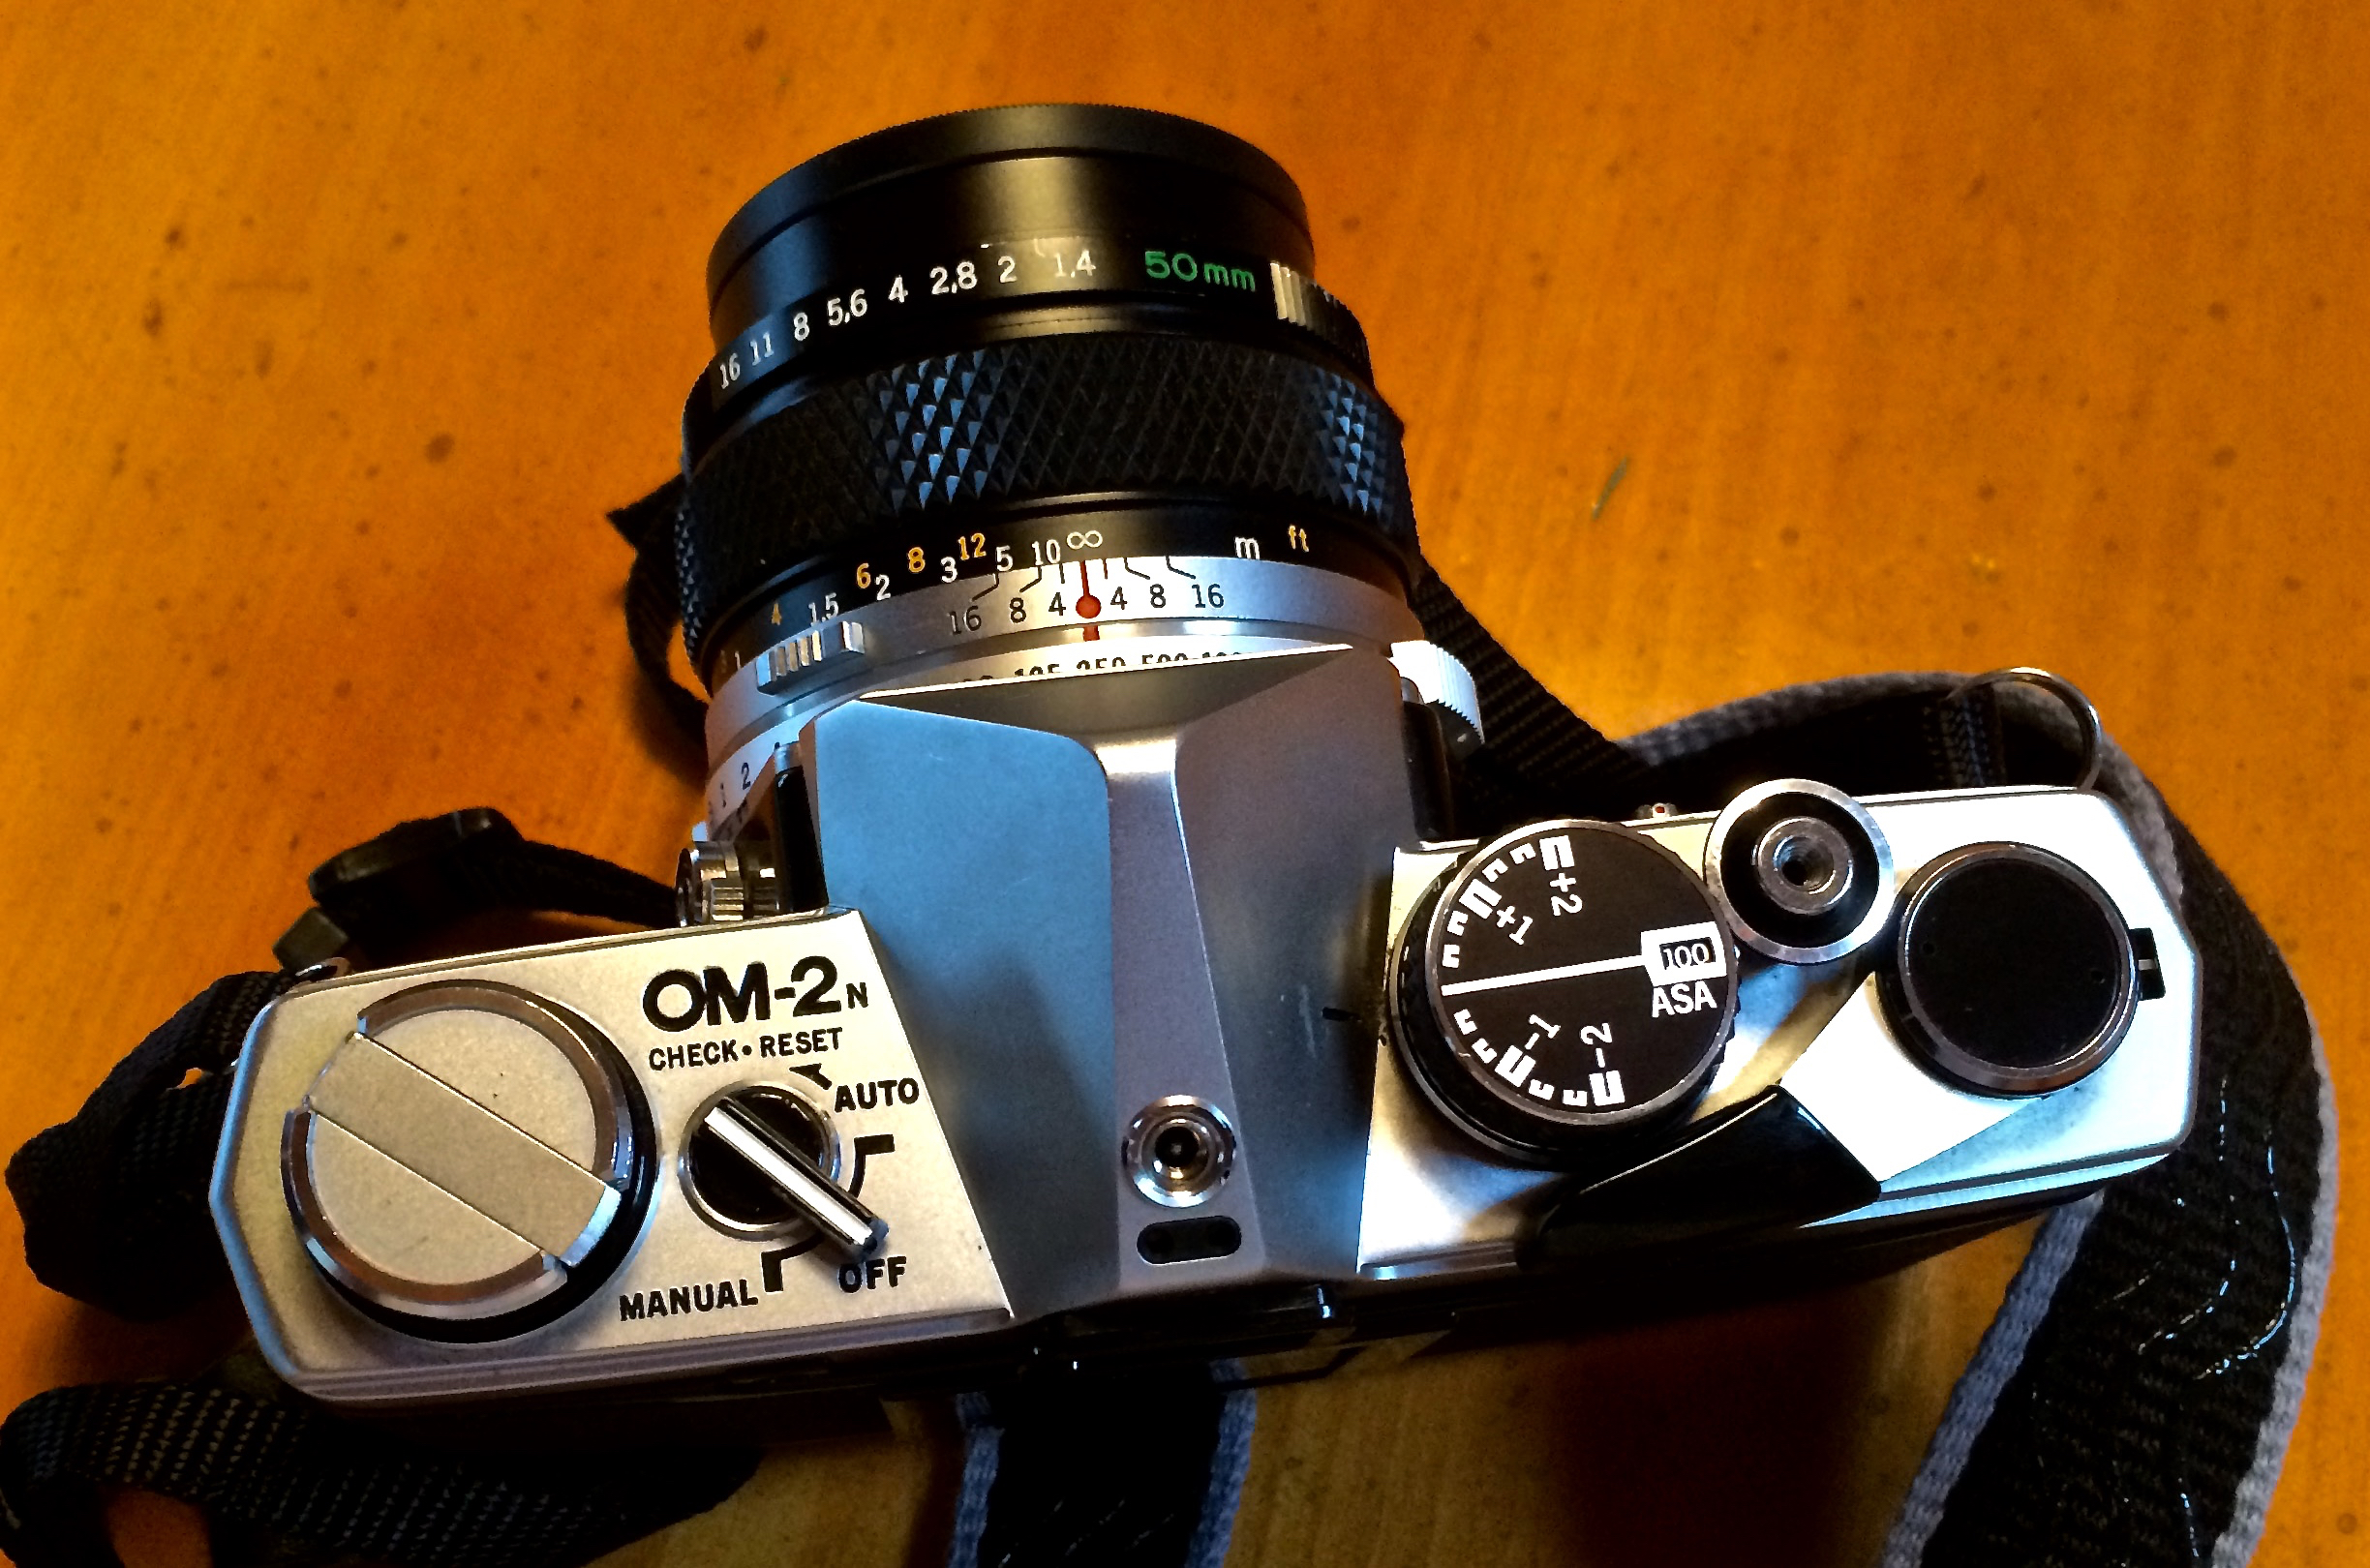 Top view of the OM2n